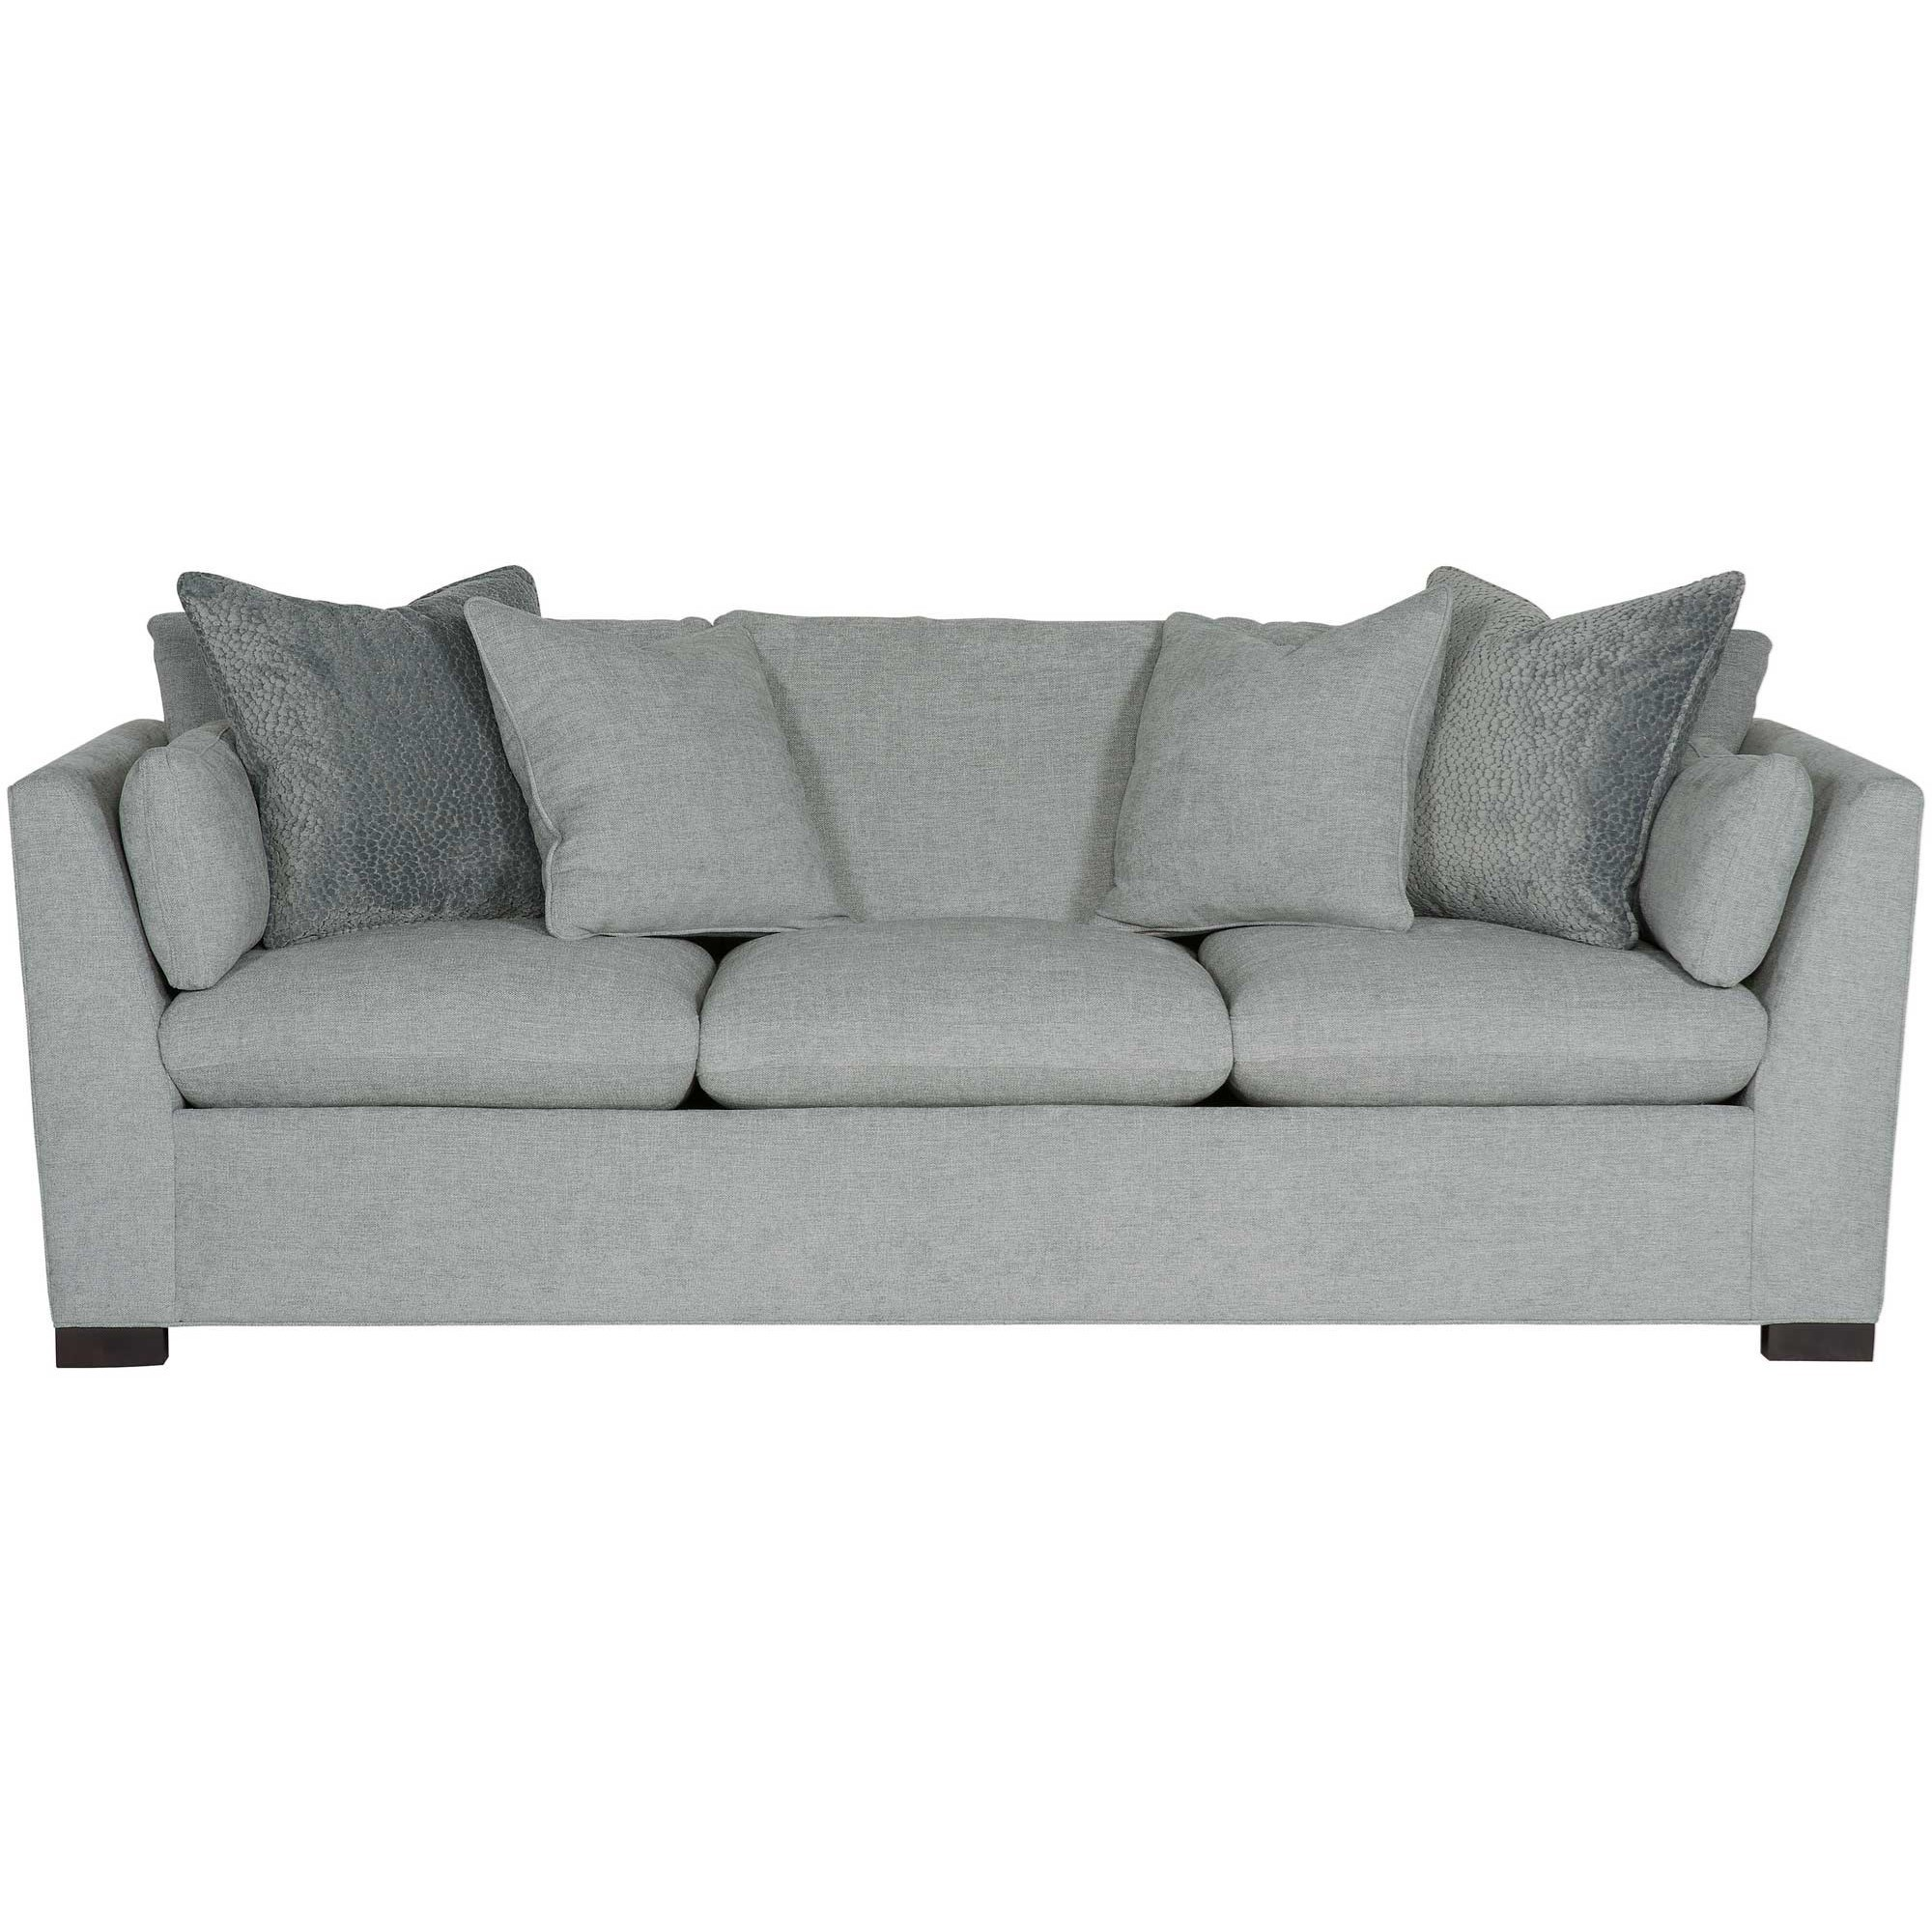 Superb Bernhardt Interiors Serenity Contemporary Sofa With Forskolin Free Trial Chair Design Images Forskolin Free Trialorg